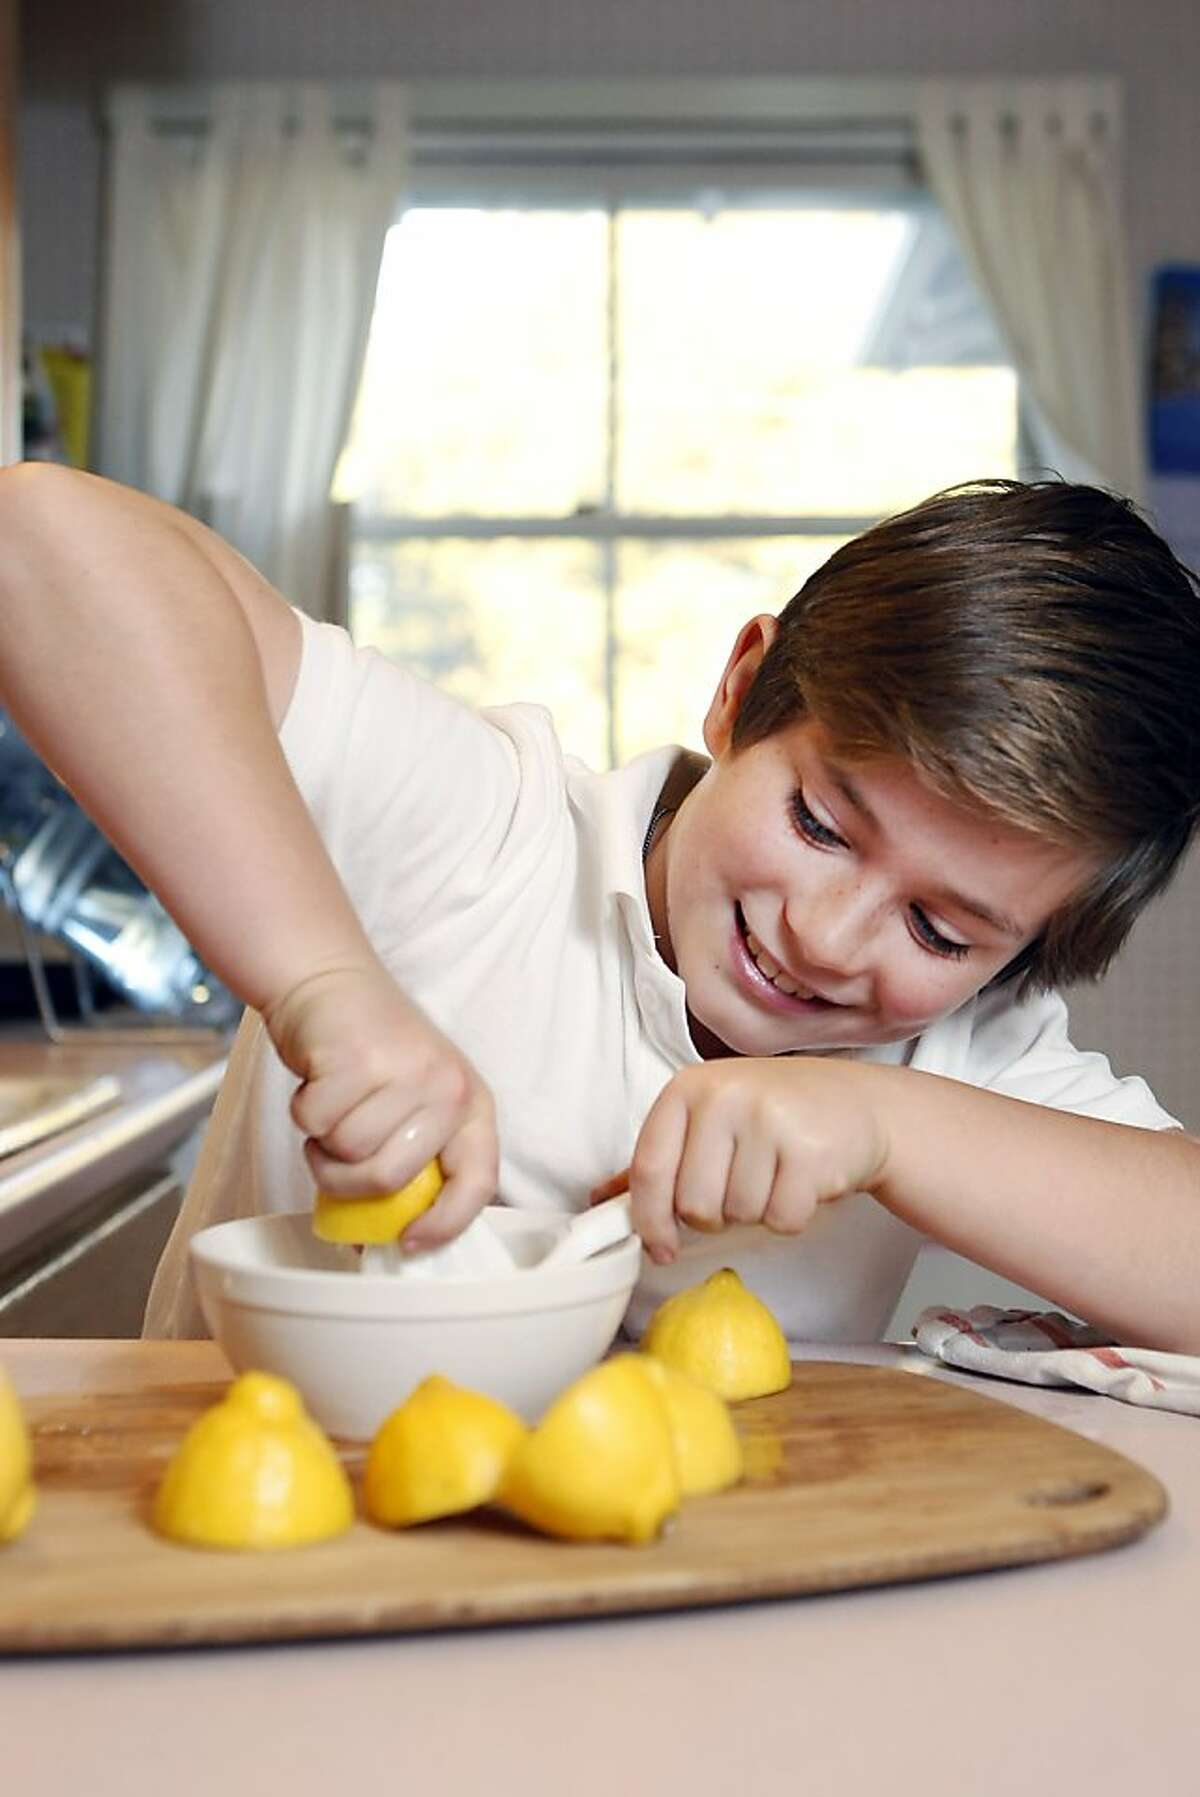 Conall Lane, 8, who recently held lemonade sales to raise funds for local food banks, poses for a portrait while squeezing lemons in his home in Burlingame, CA, Thursday, December 12, 2013.